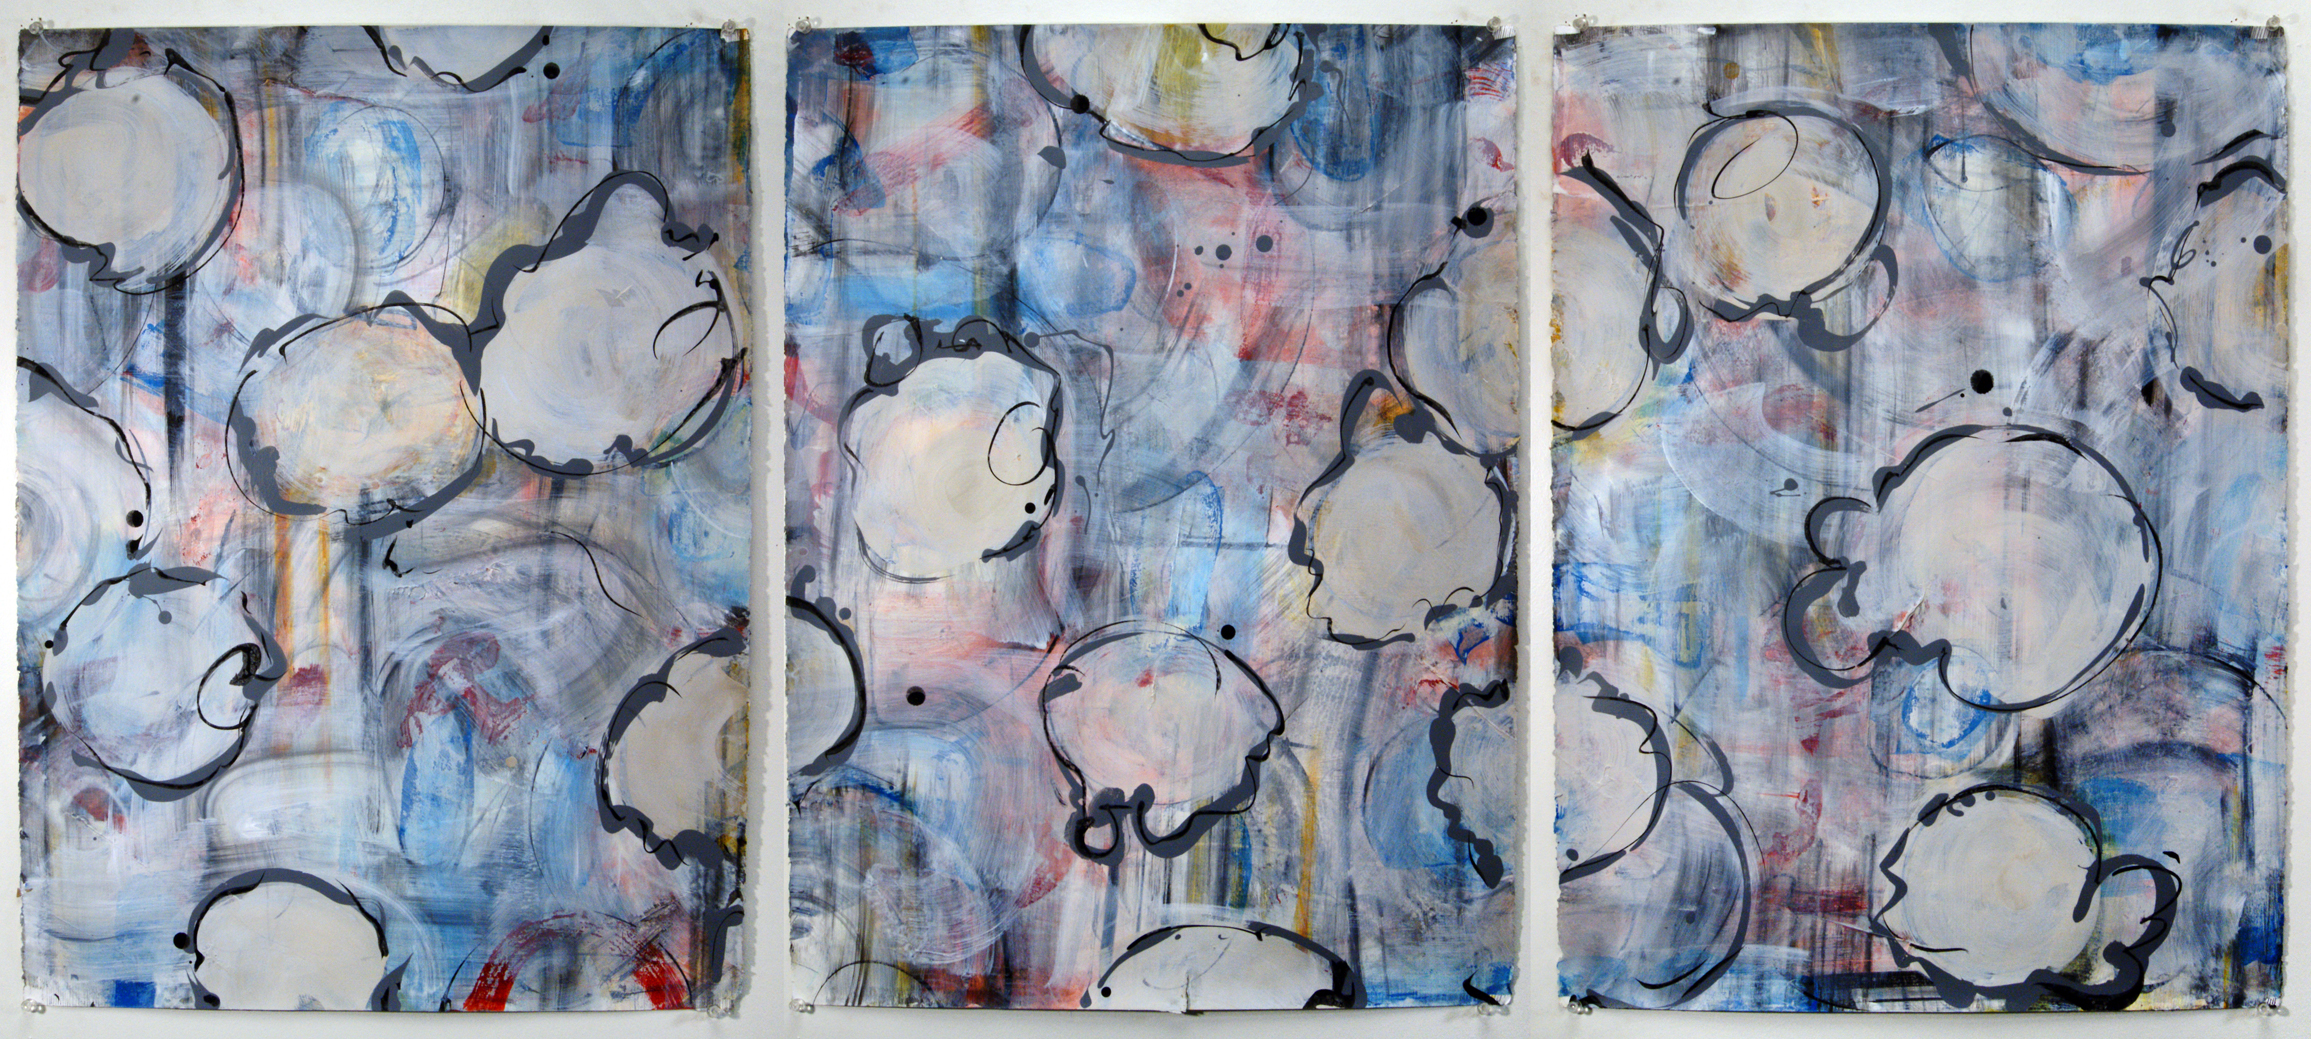 Triptych, Palimpsest Series, Rag Paper, Ink, Chalk Pastel, Acrylic